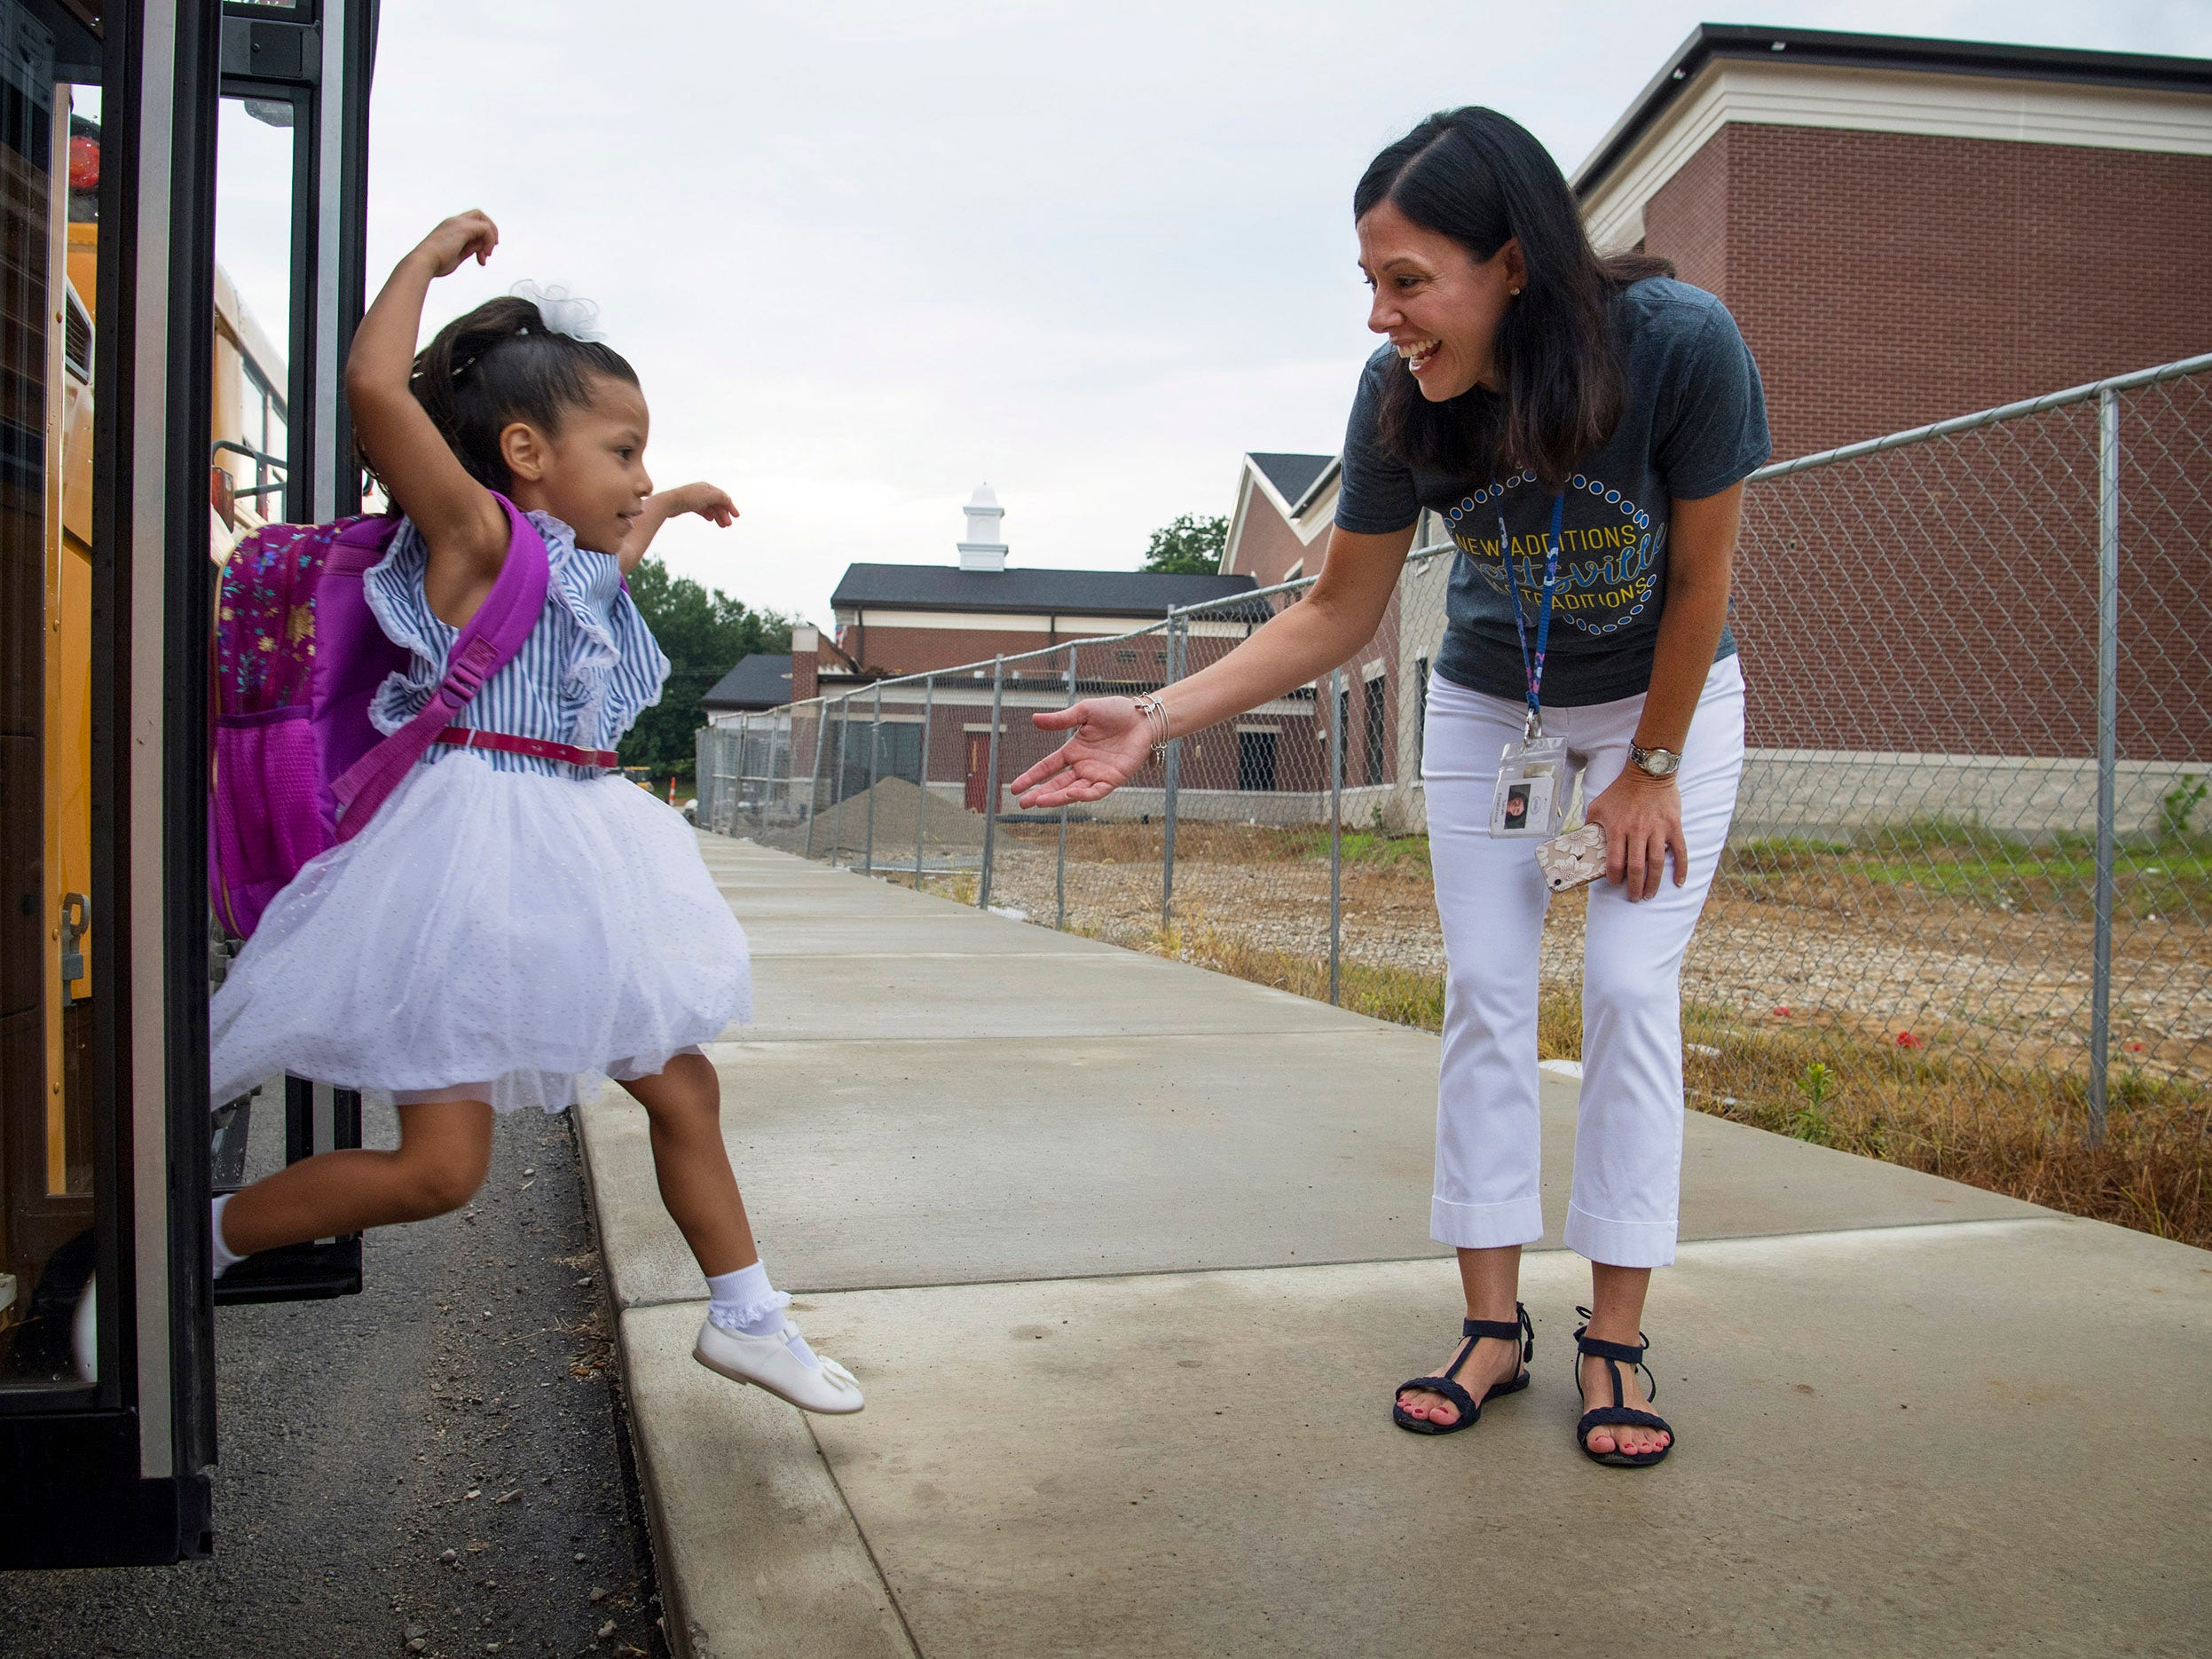 Kindergartener Galilea Guivas, 5, leaps from the school bus to embrace Principal Sarah Estabrook on her first day of school at Spottsville Elementary School, Wednesday morning, August 8, 2018.